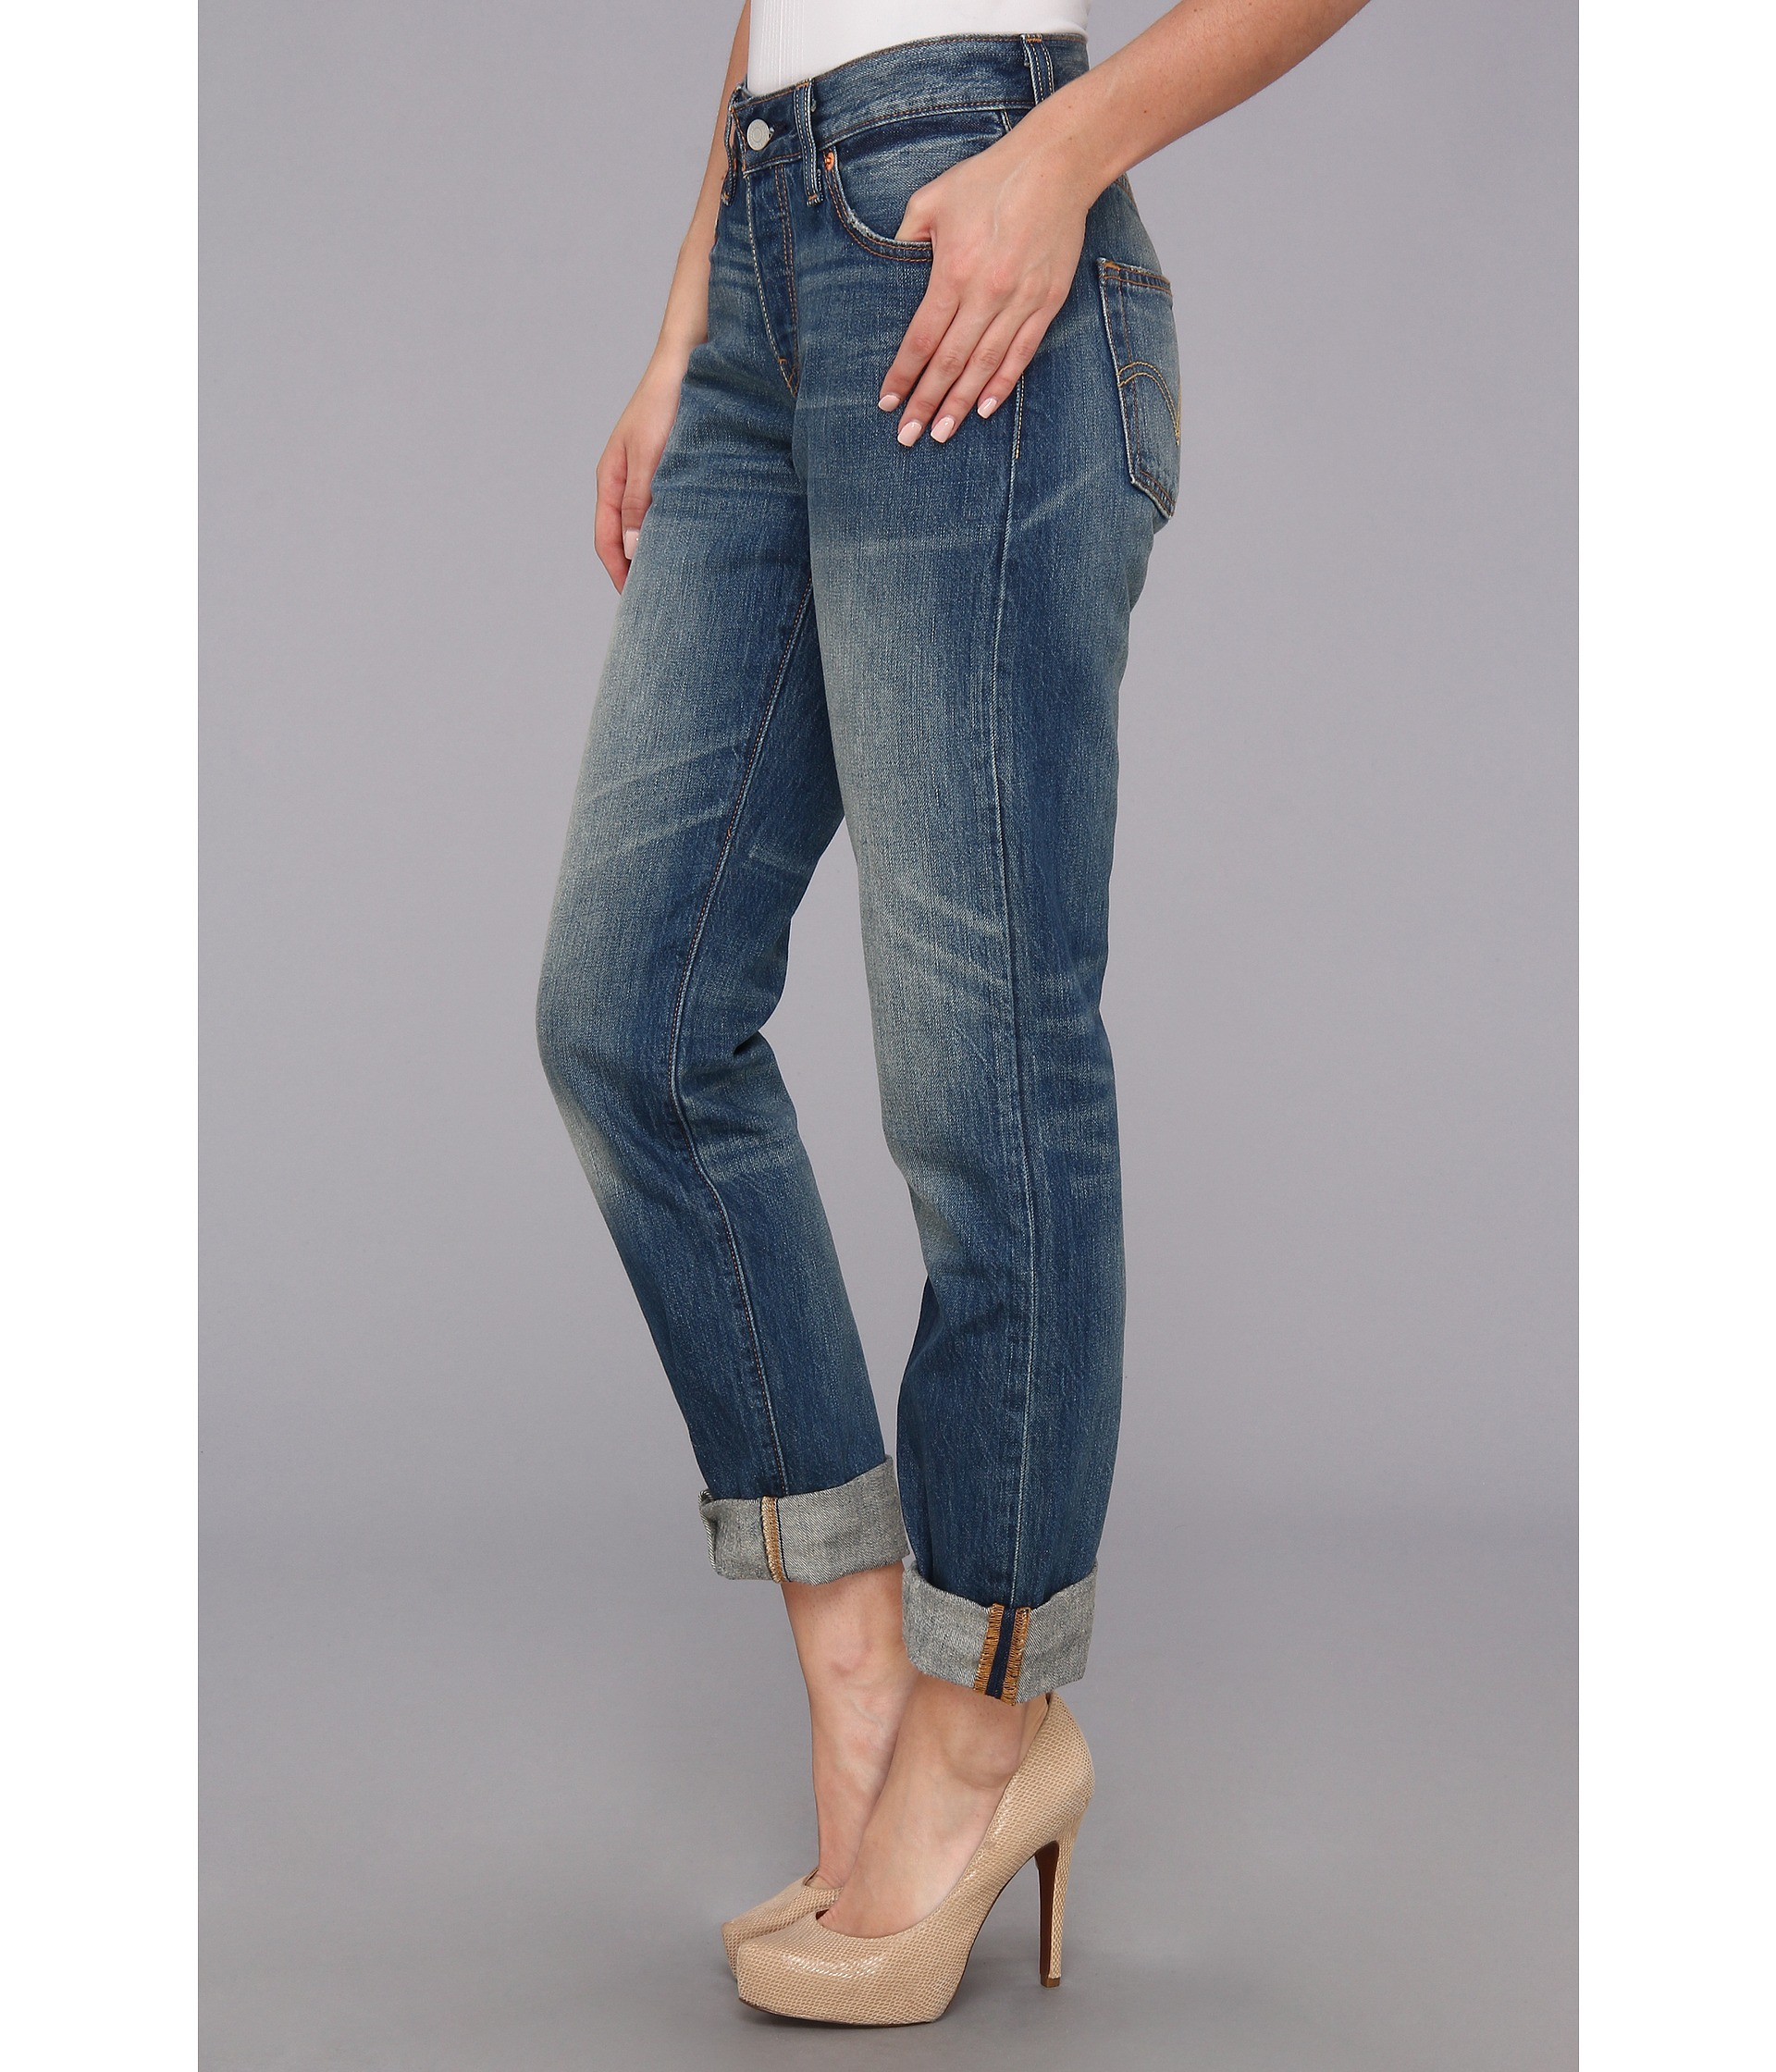 levis juniors 501 jeans for women shipped free at zappos